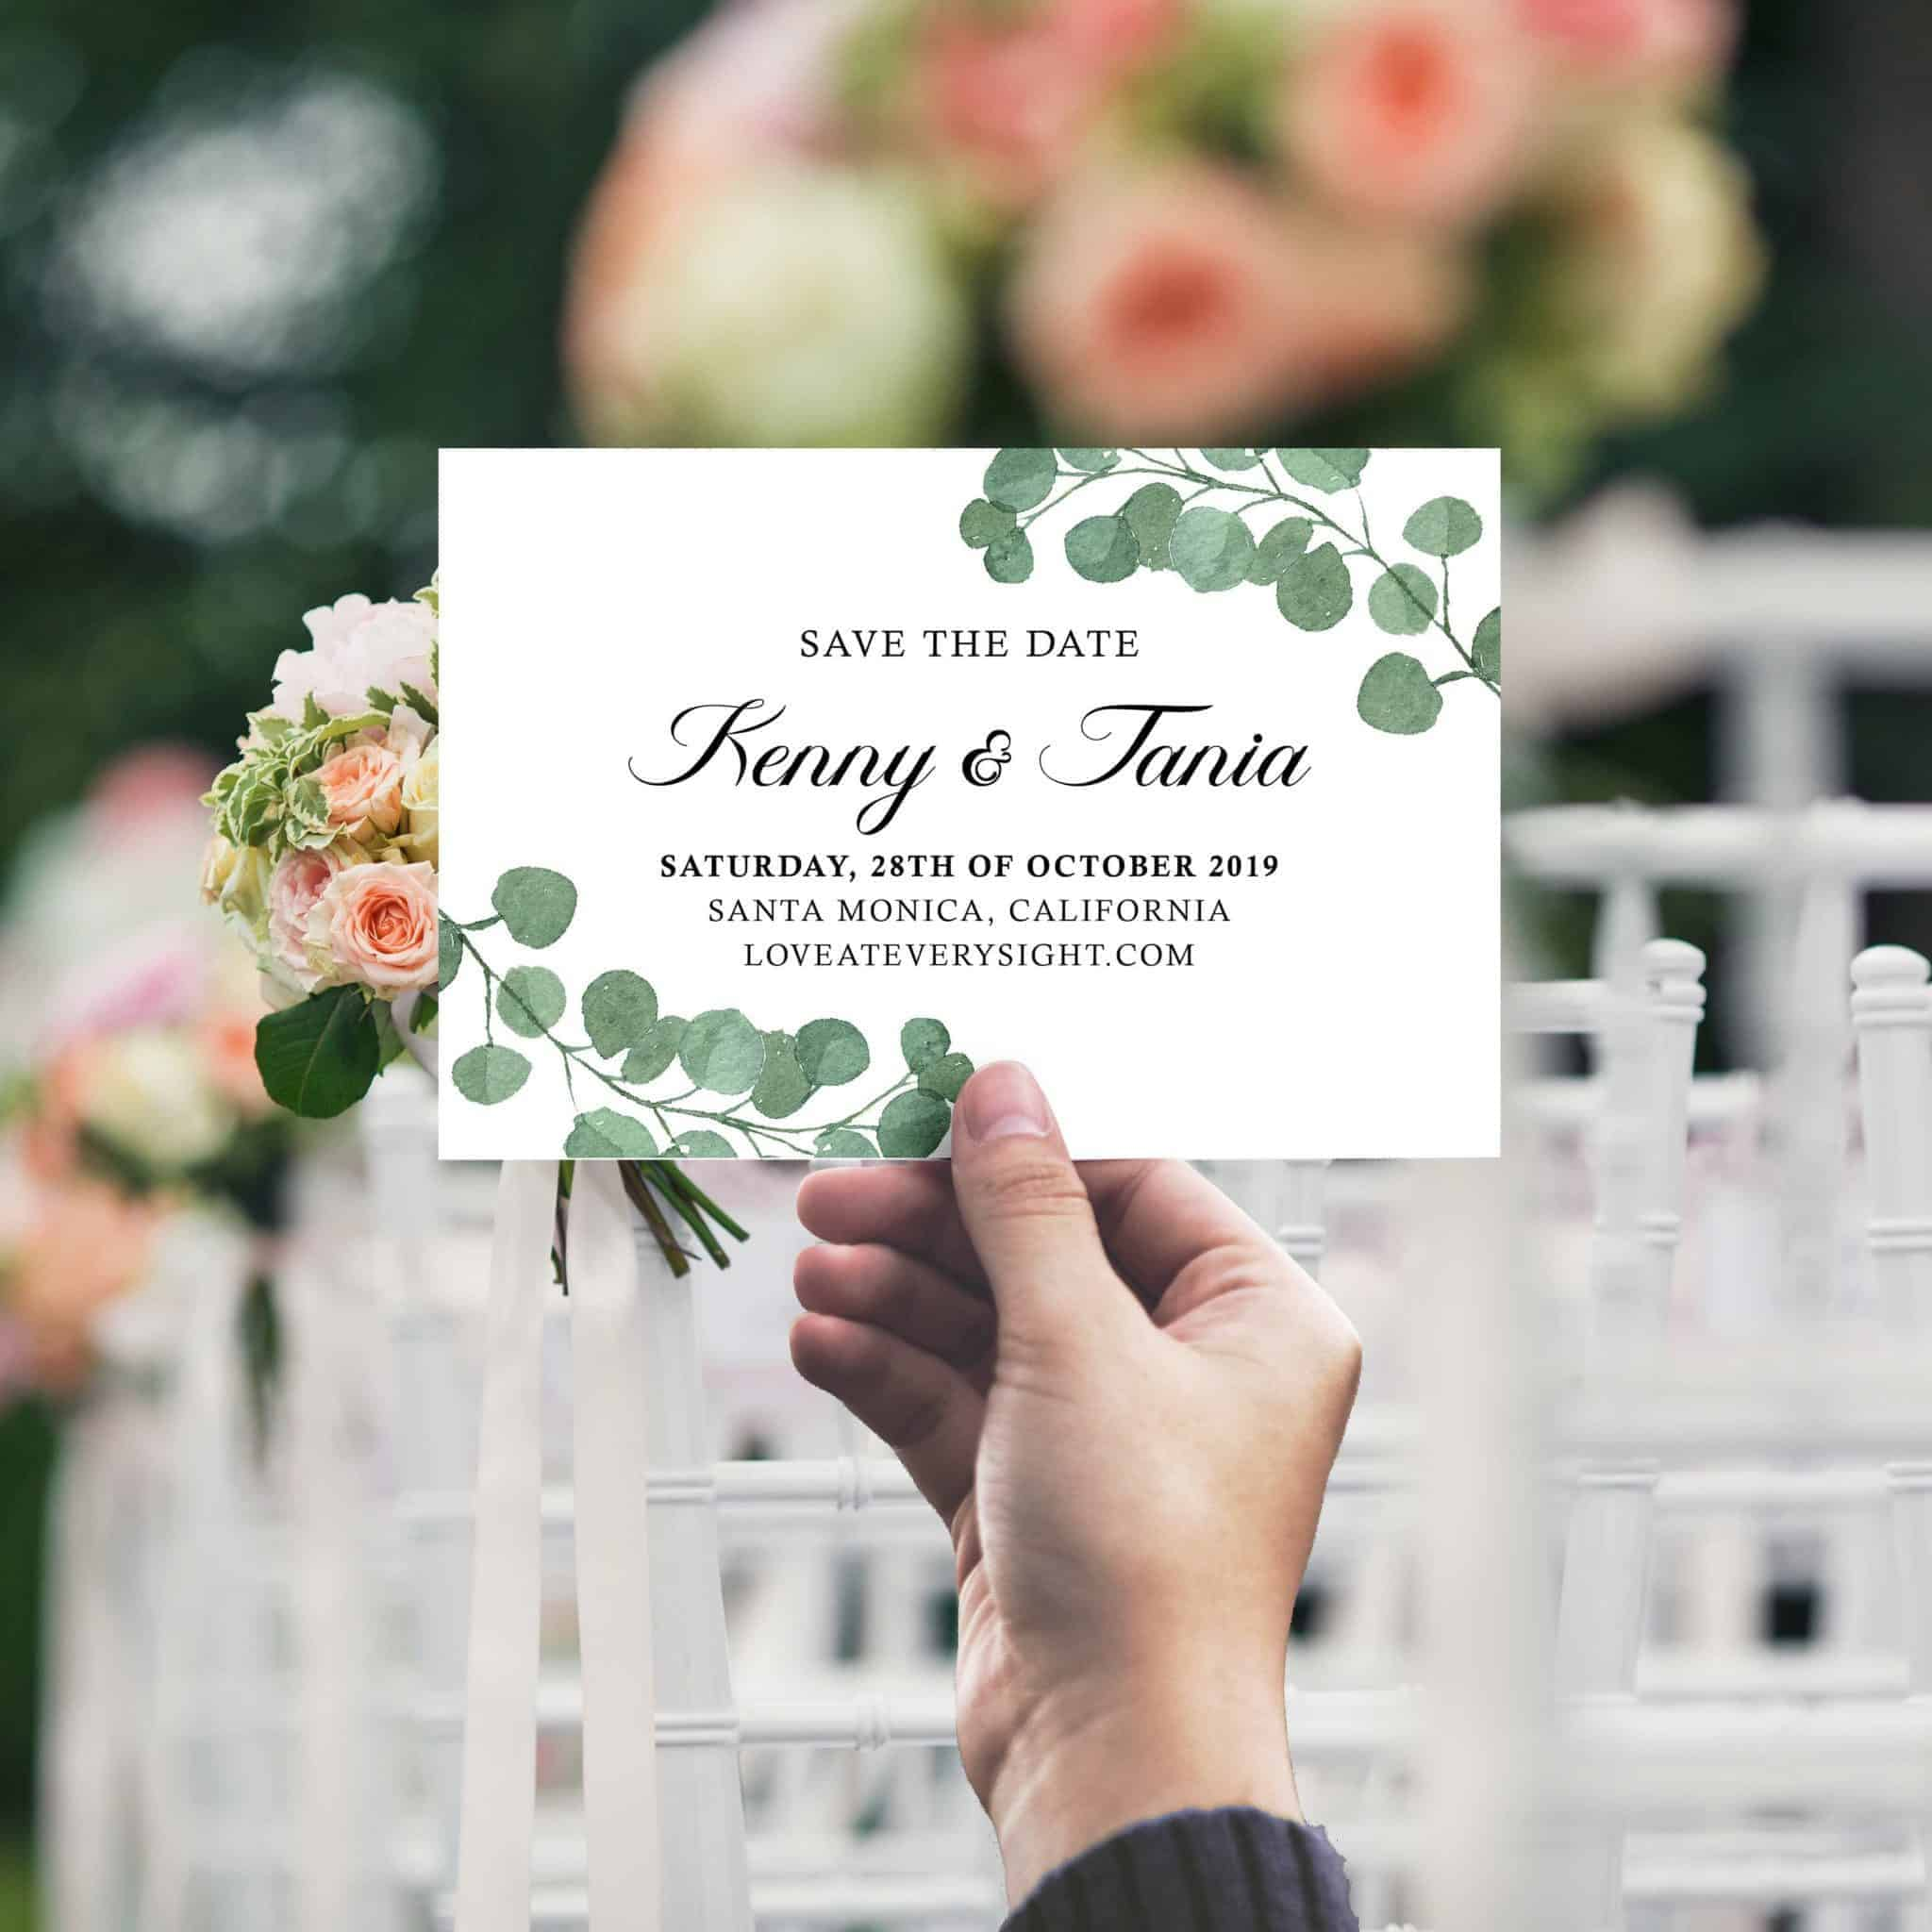 Themed Save The Date Postcards, Custom Wedding Announcement Cards, Wedding Favors, Playful Leaves Design